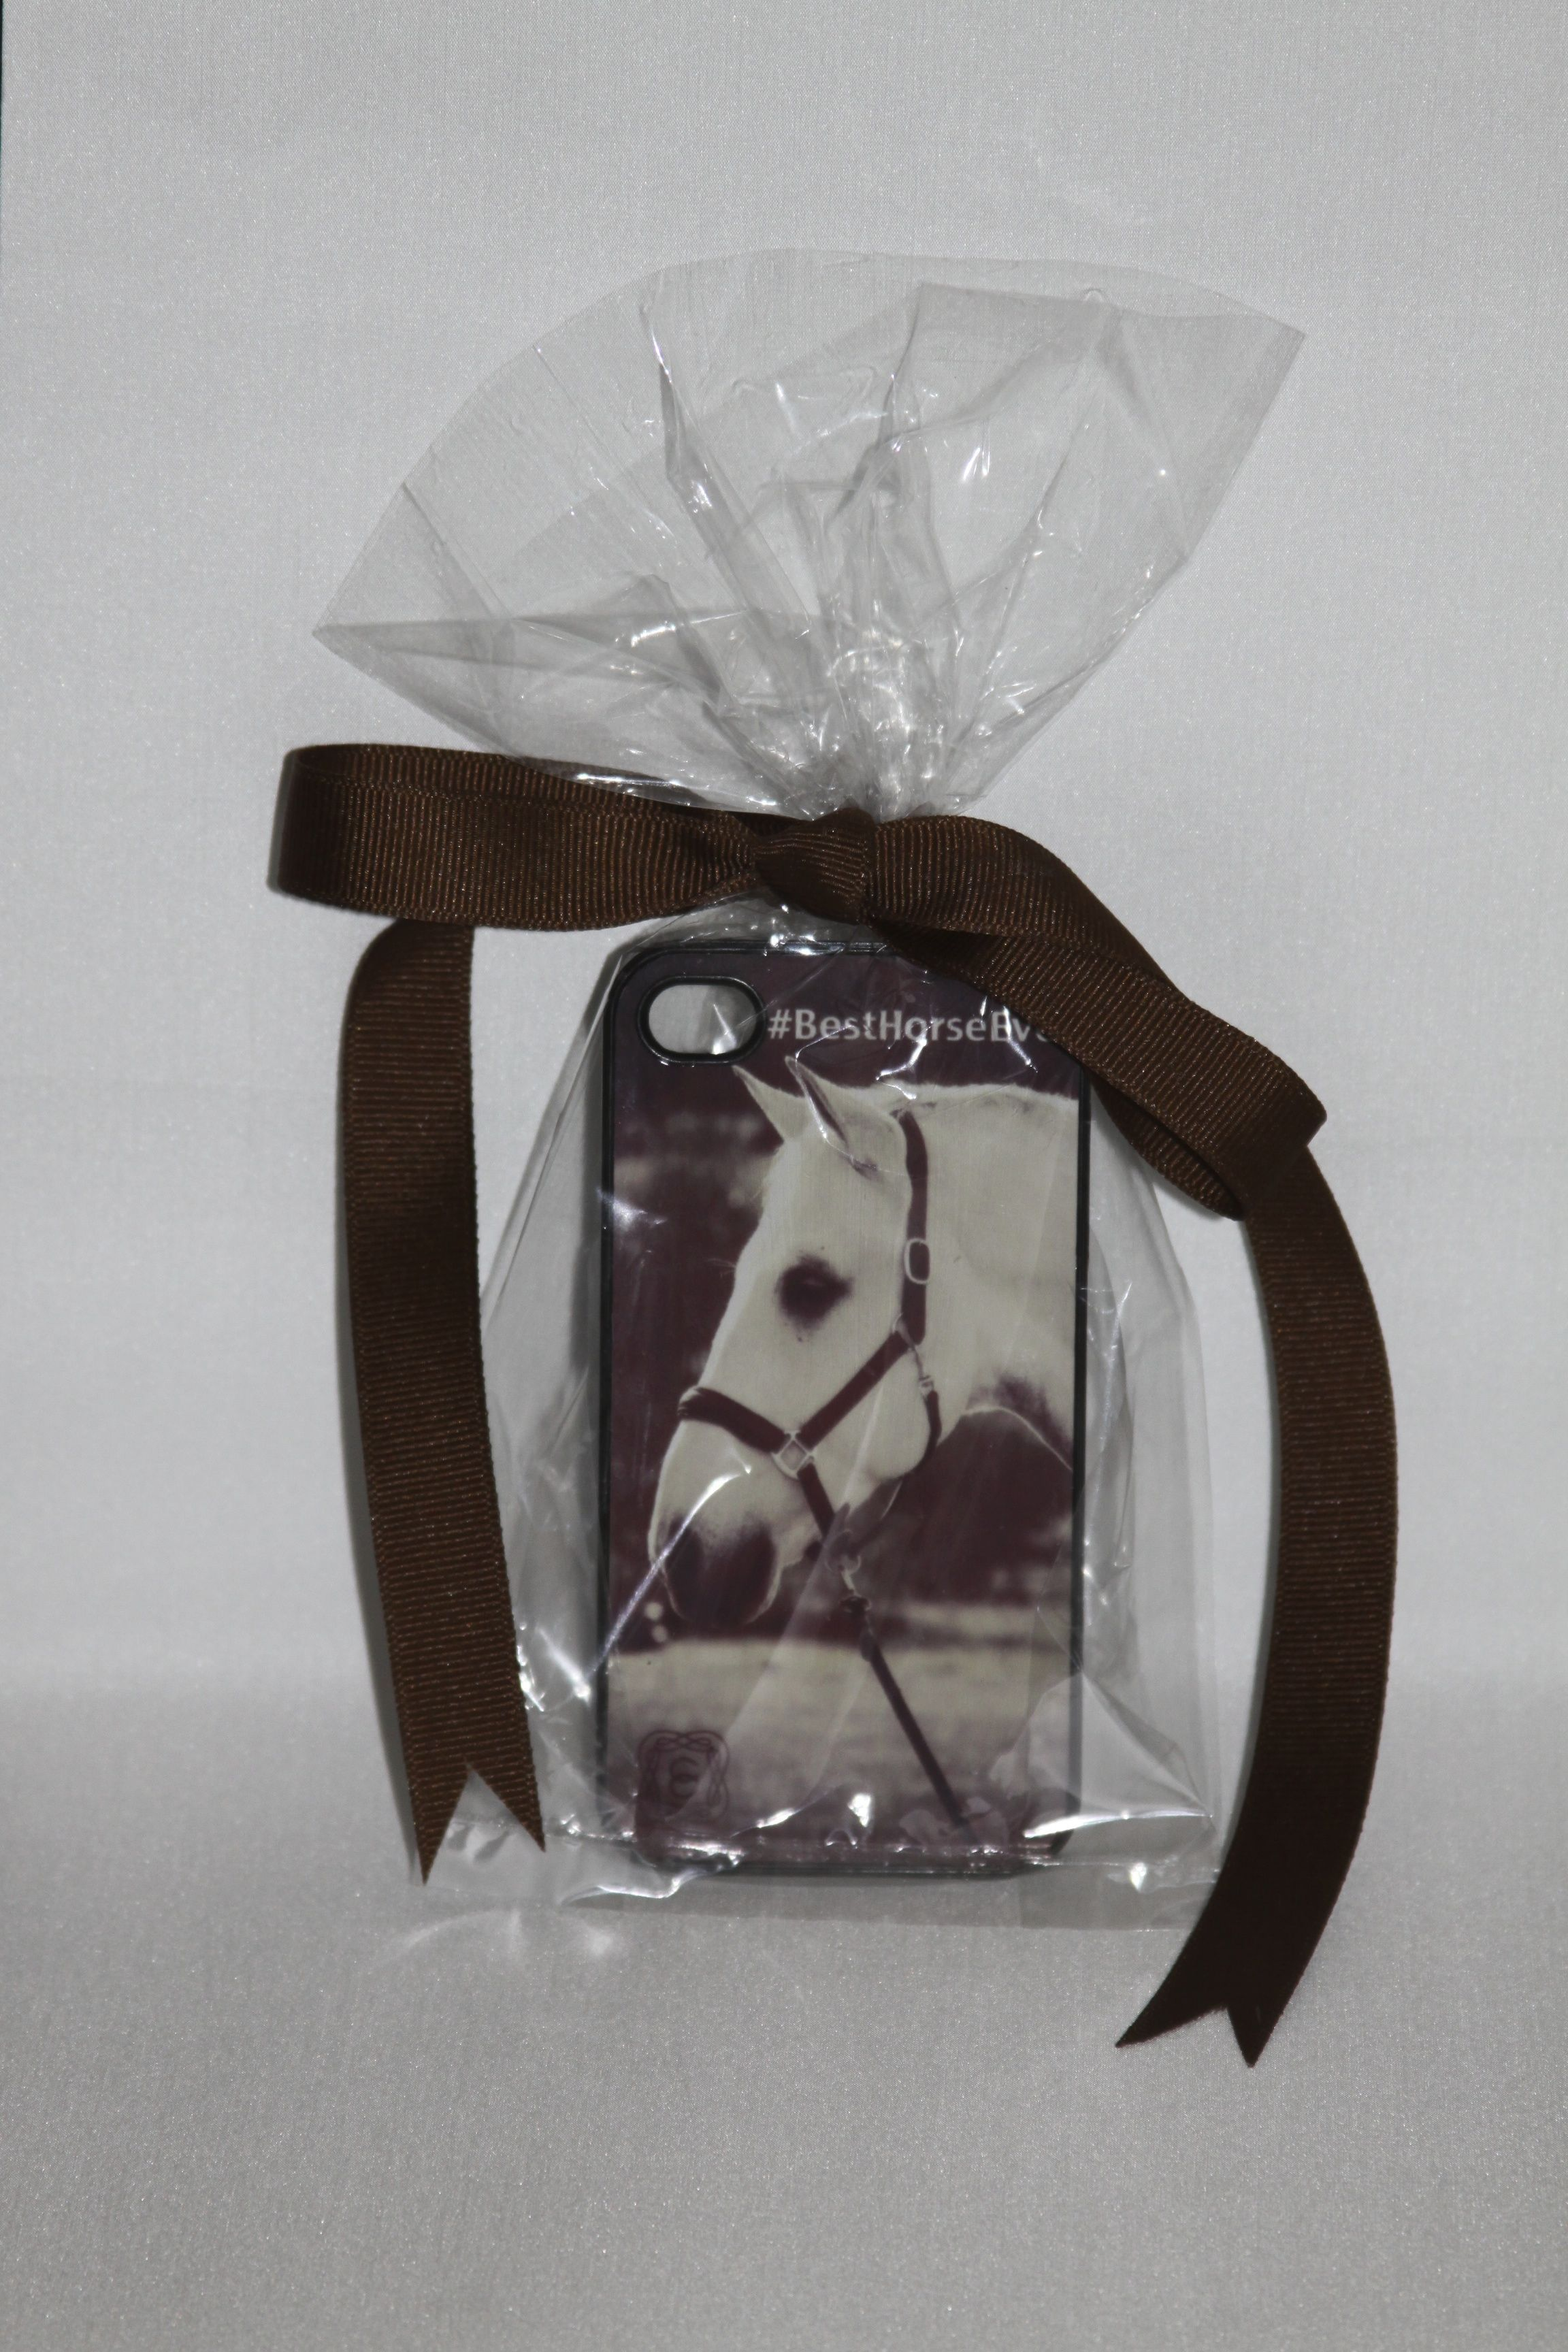 Custom iPhone cover #BestHorseEver!